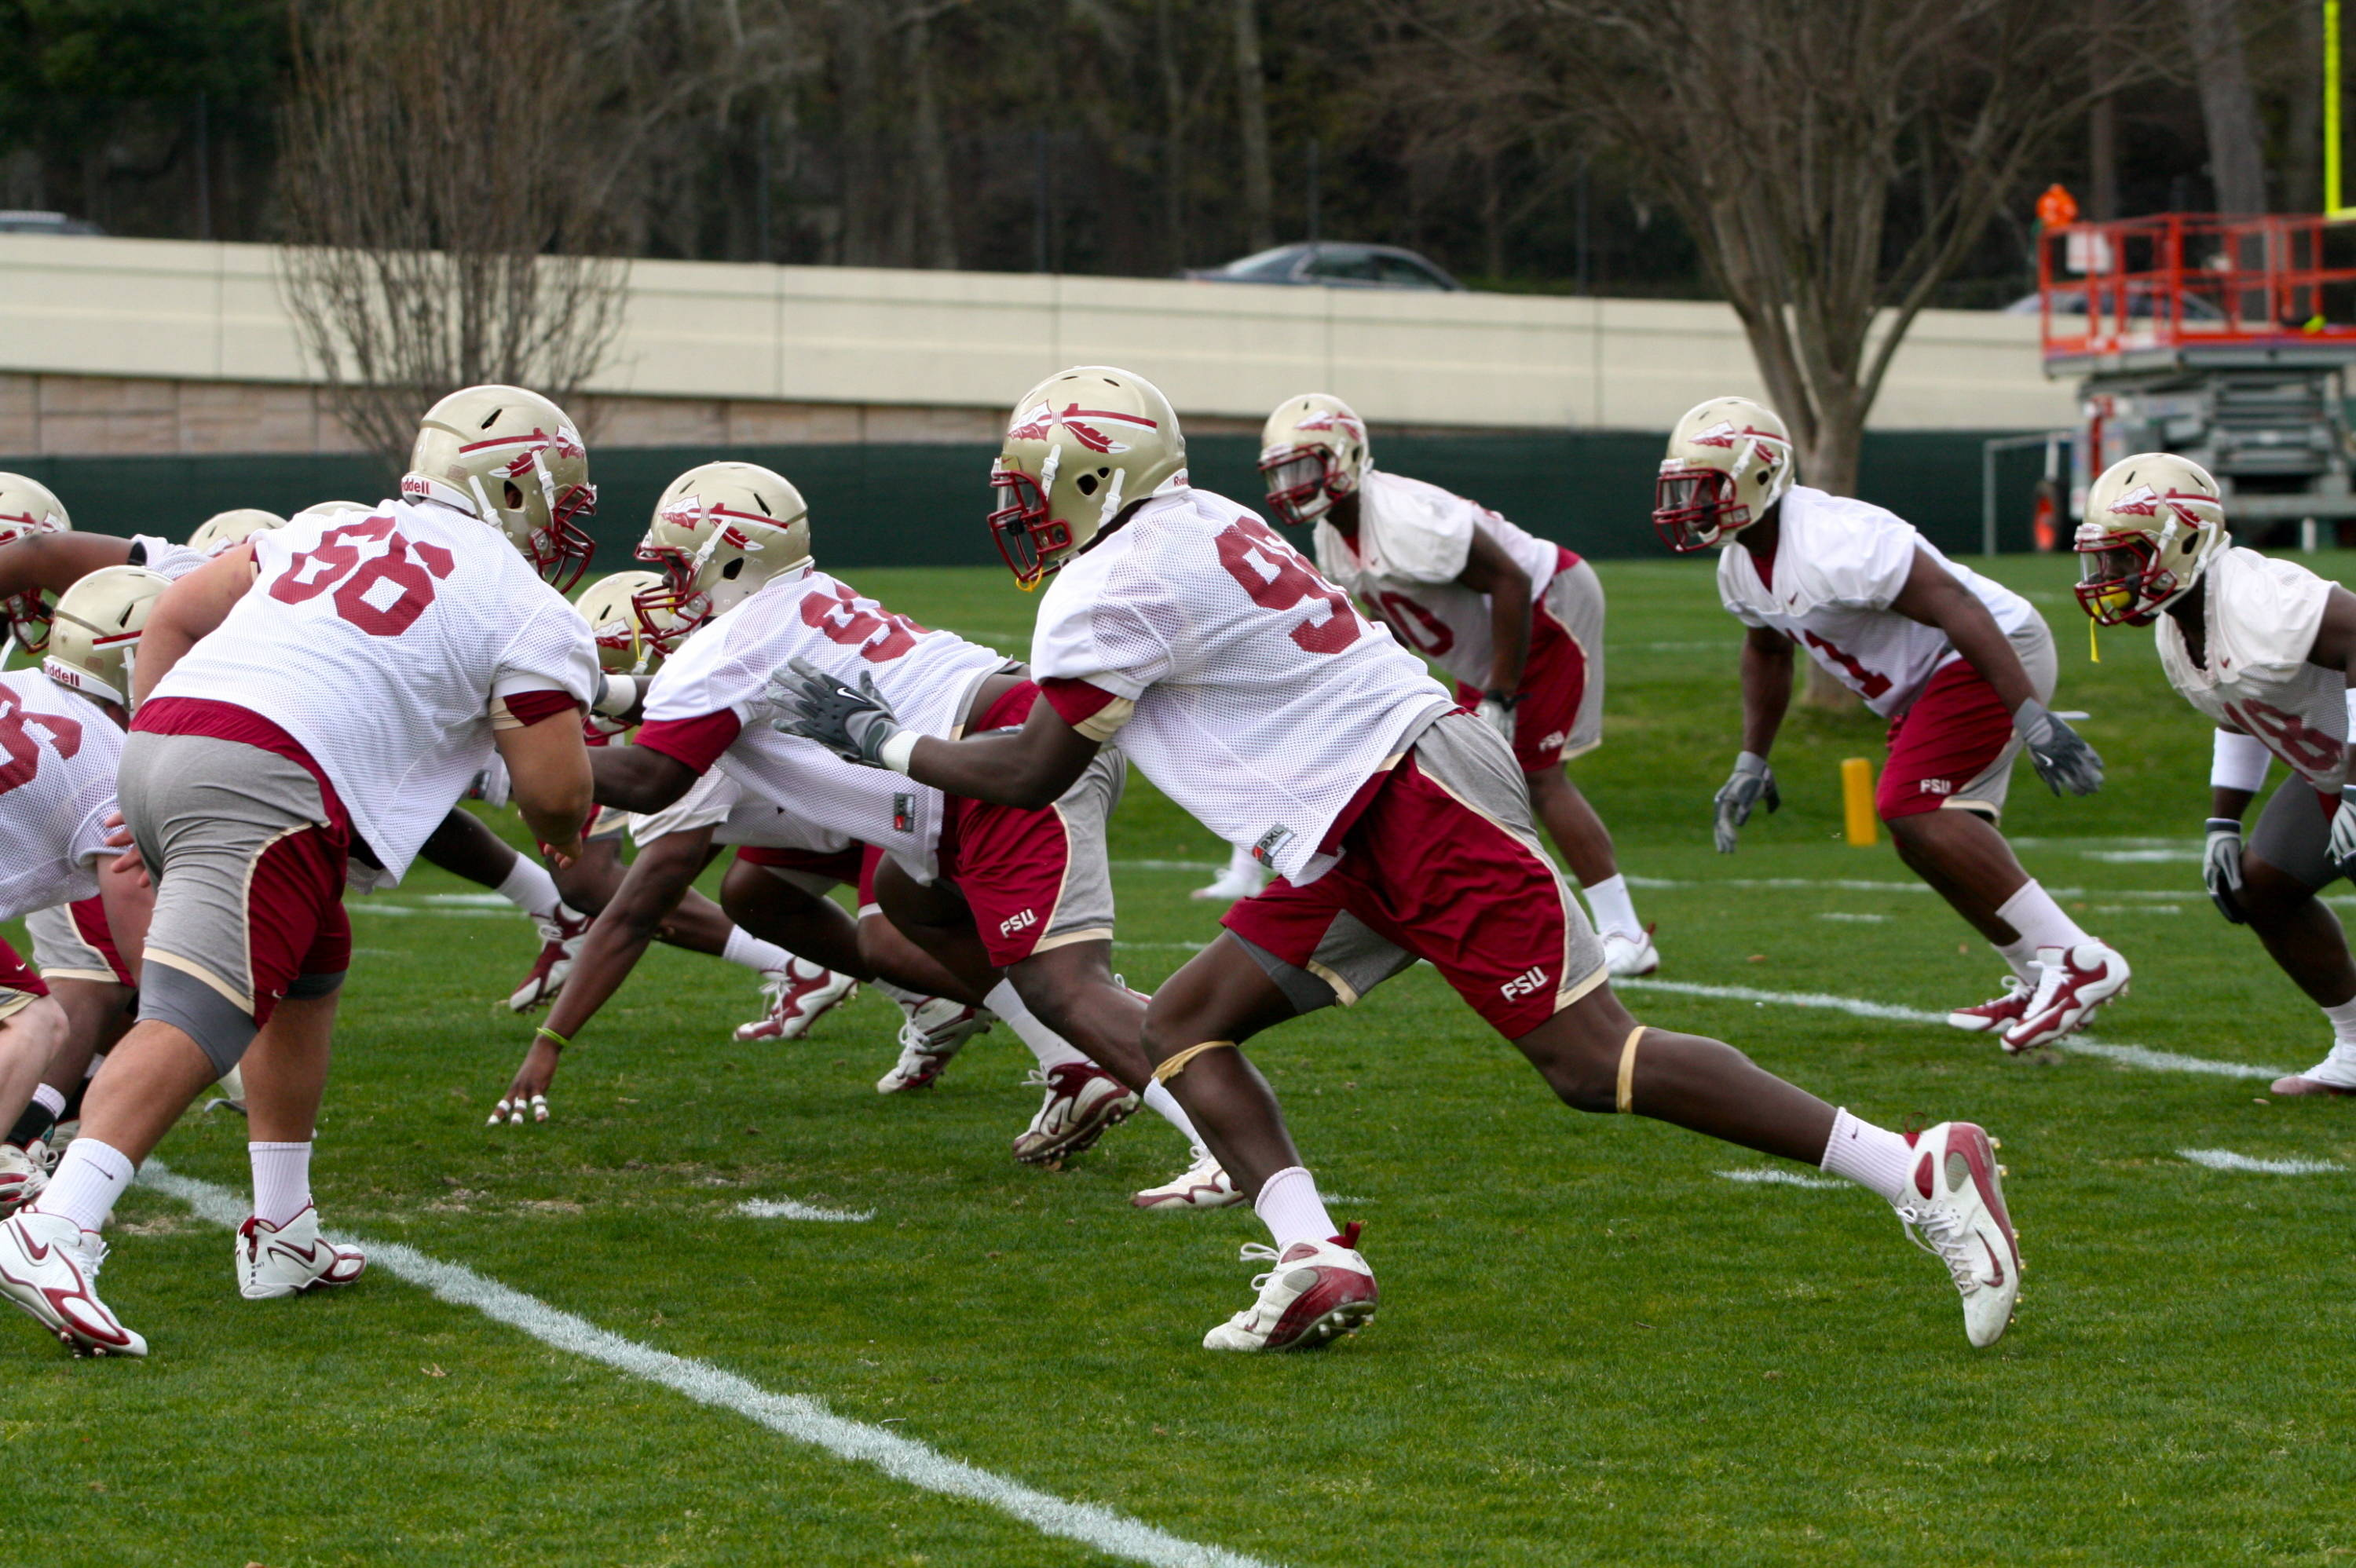 The Florida State defense